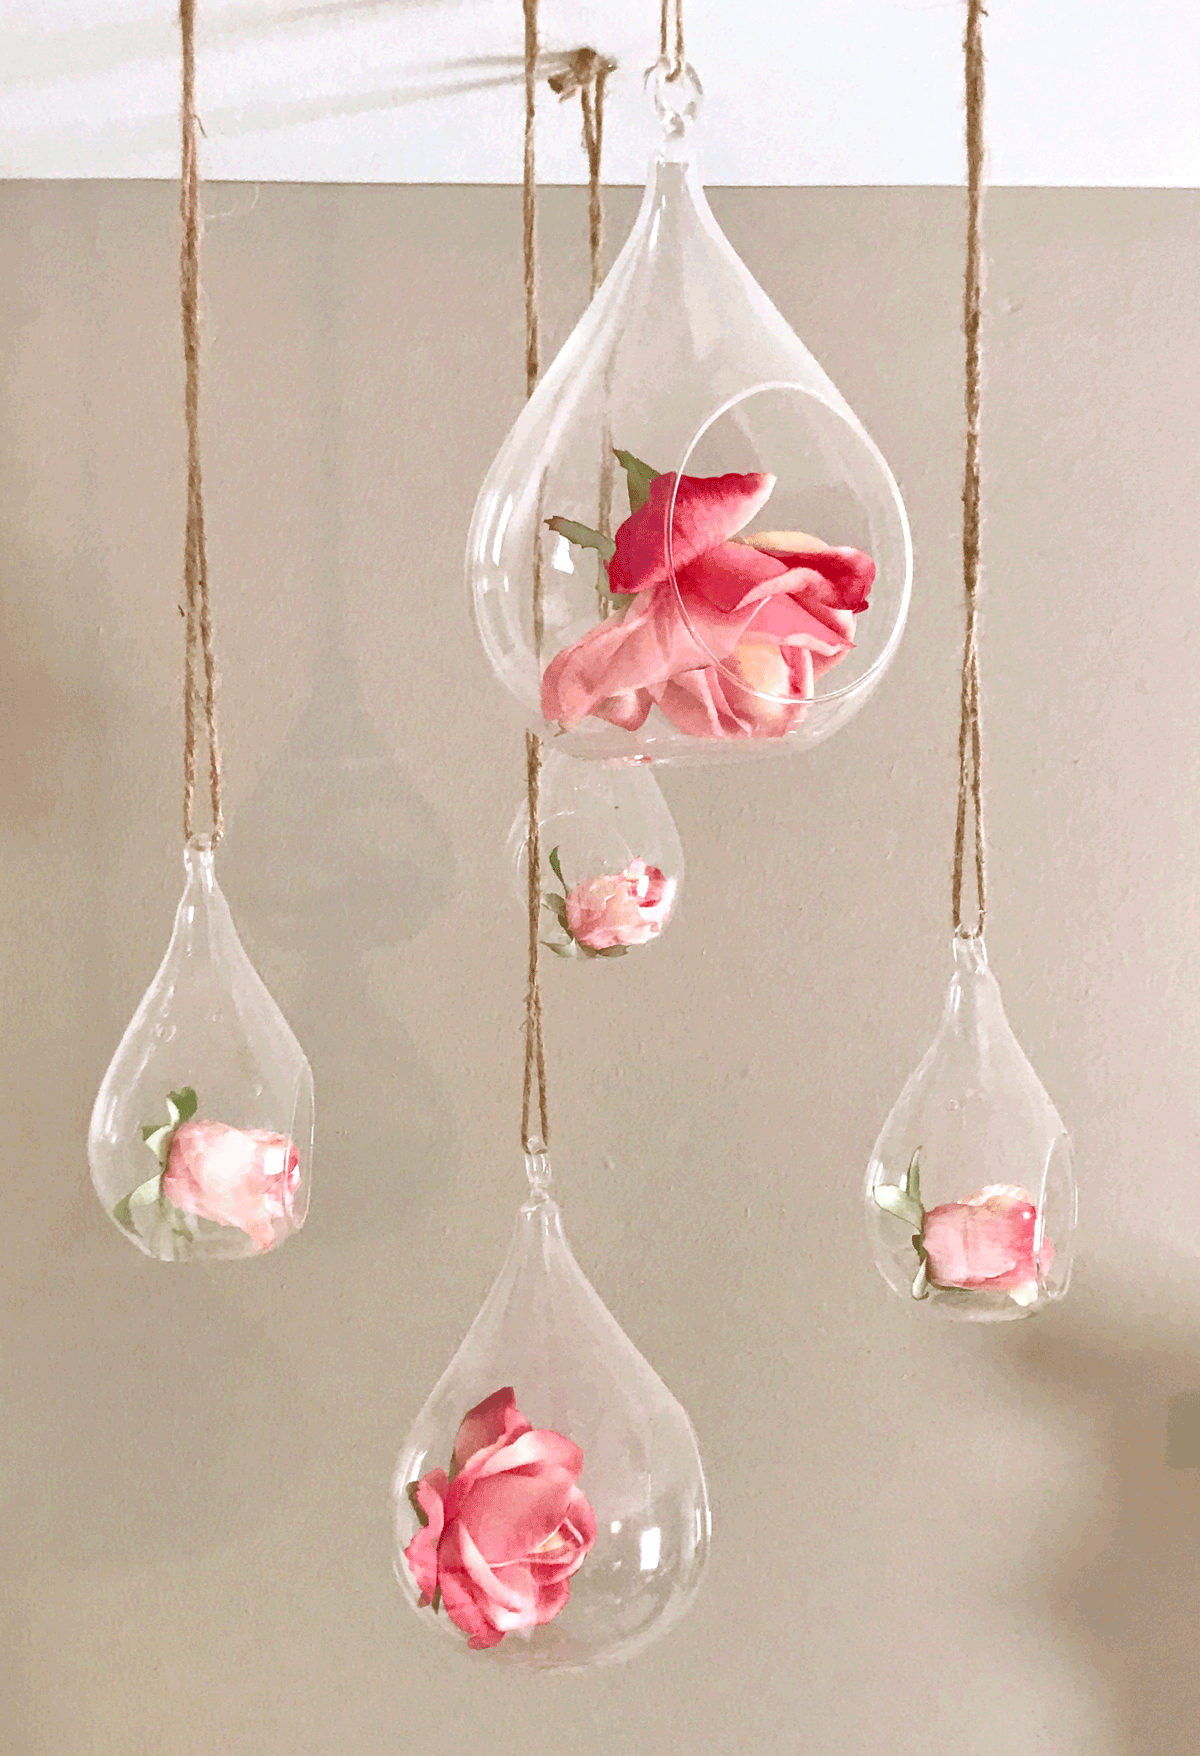 hanging teardrop glass with roses for nursery mobile